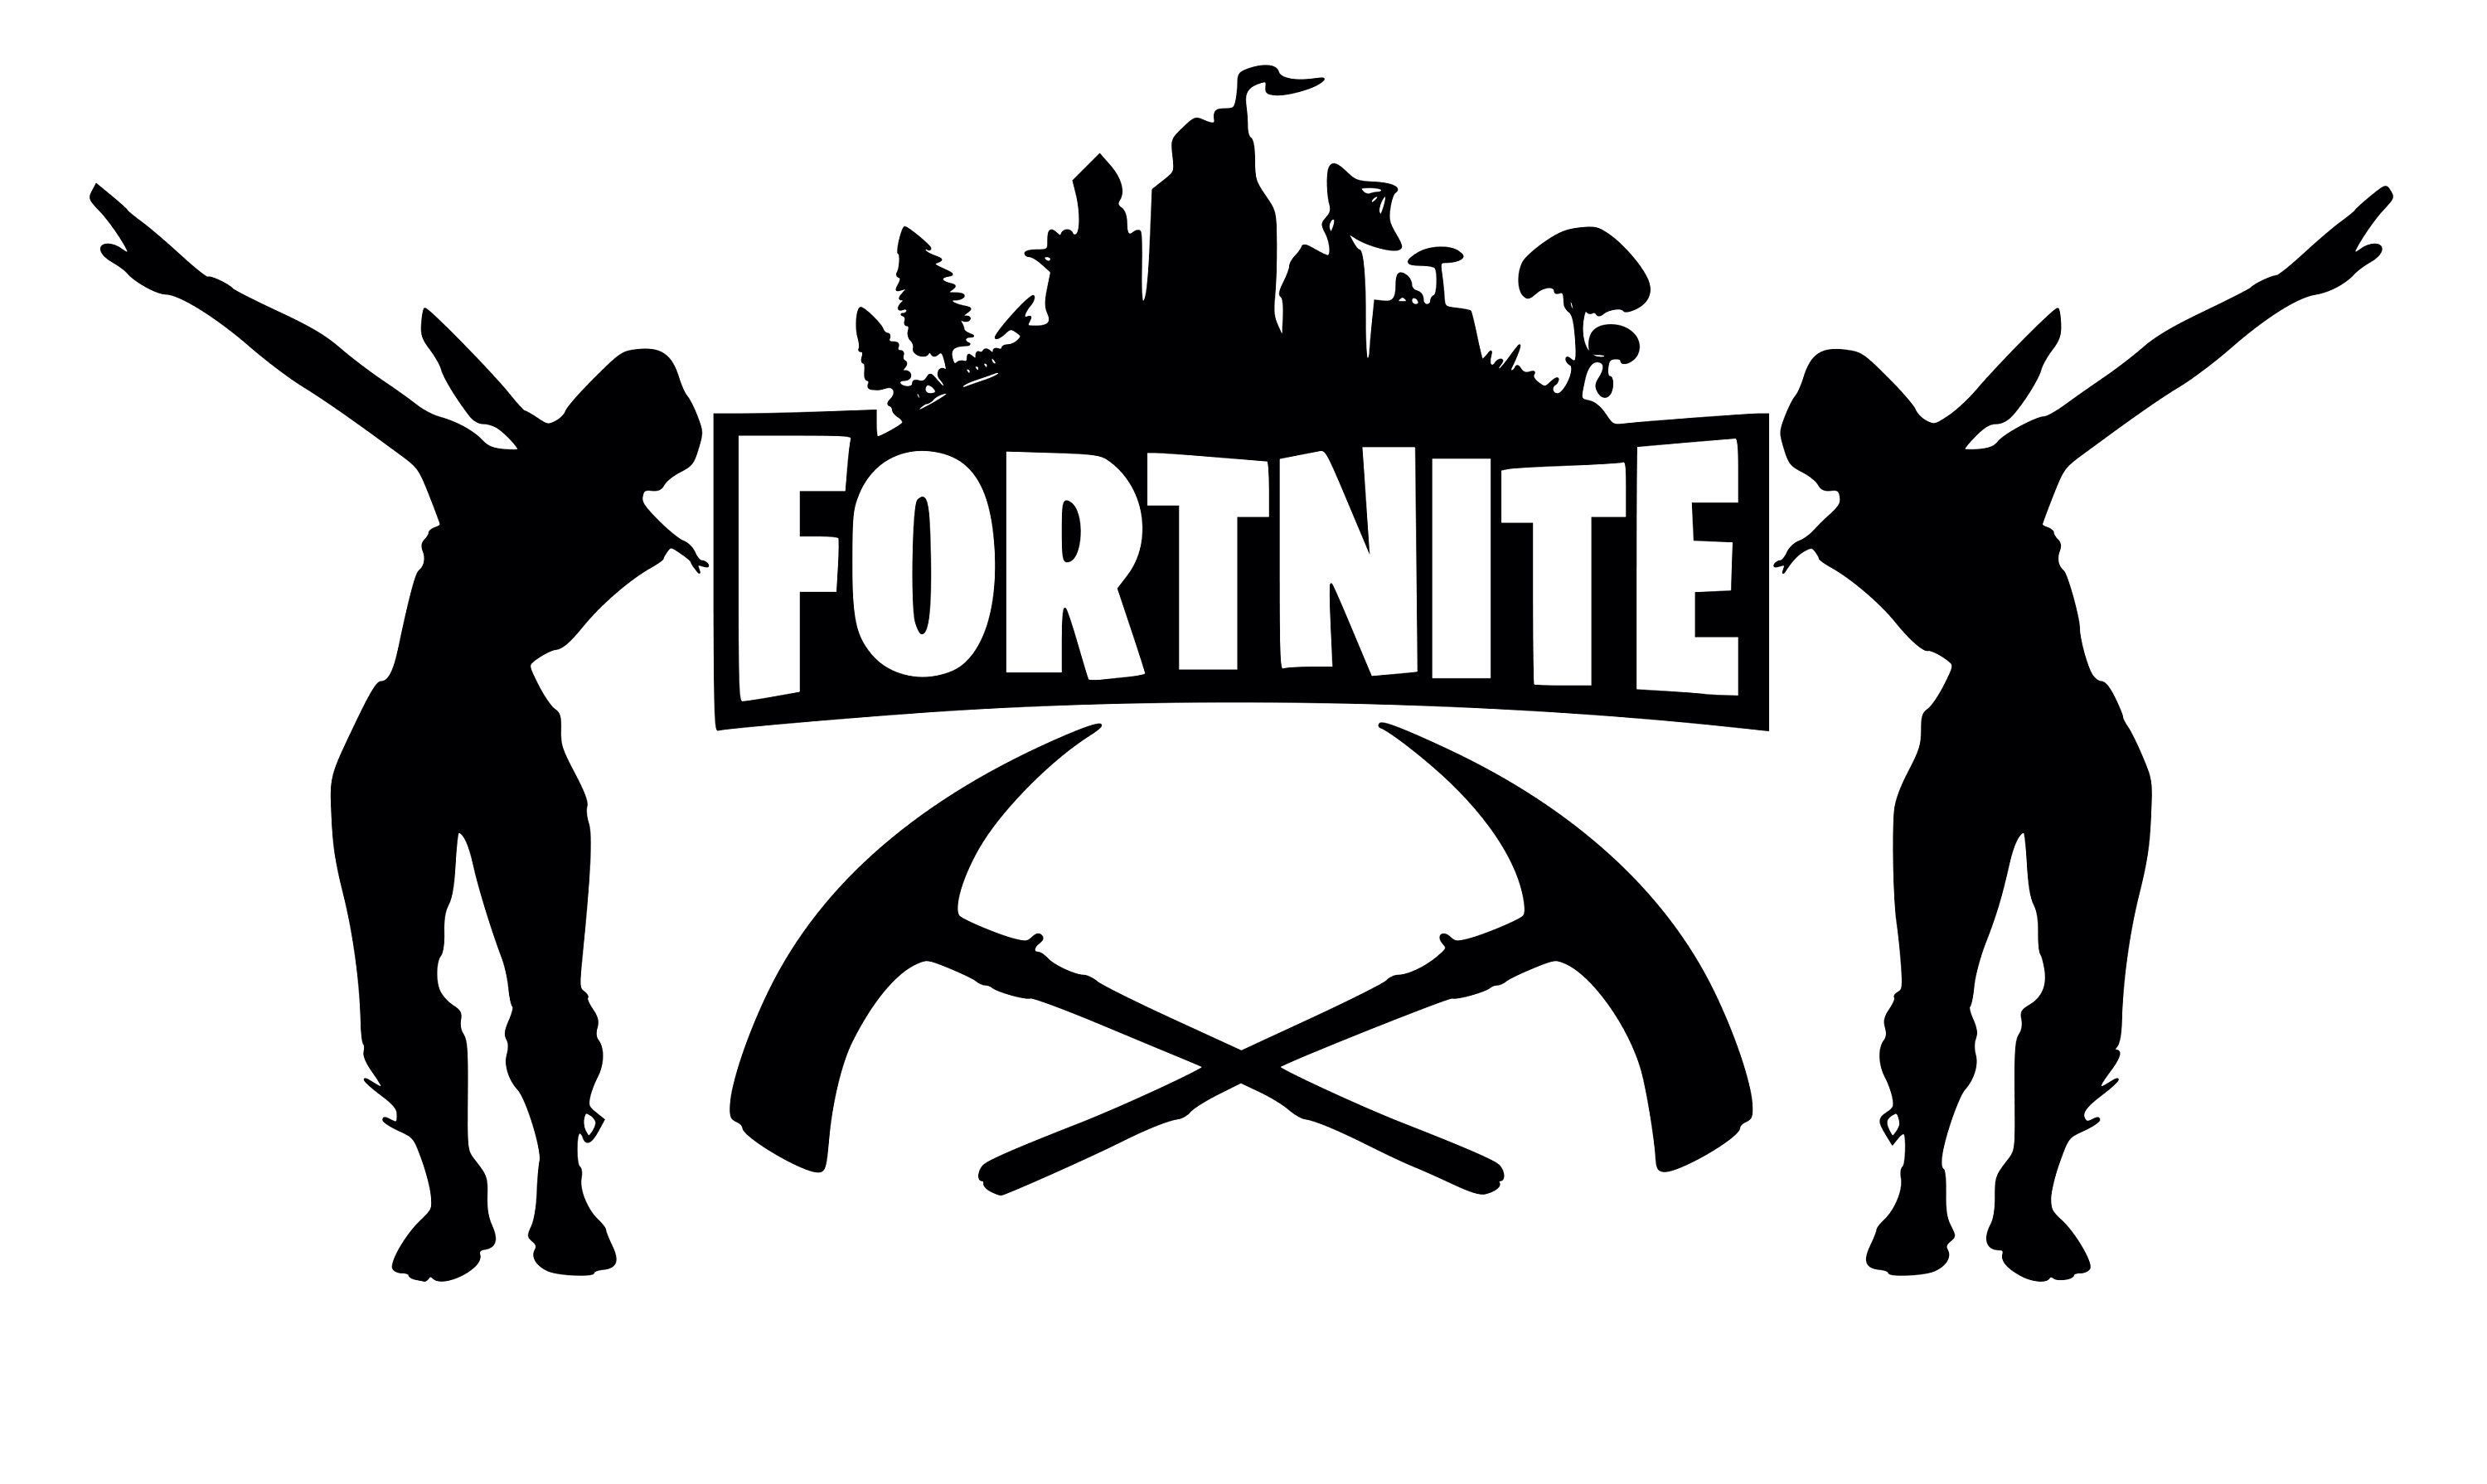 Fortnite Clipart for download free.